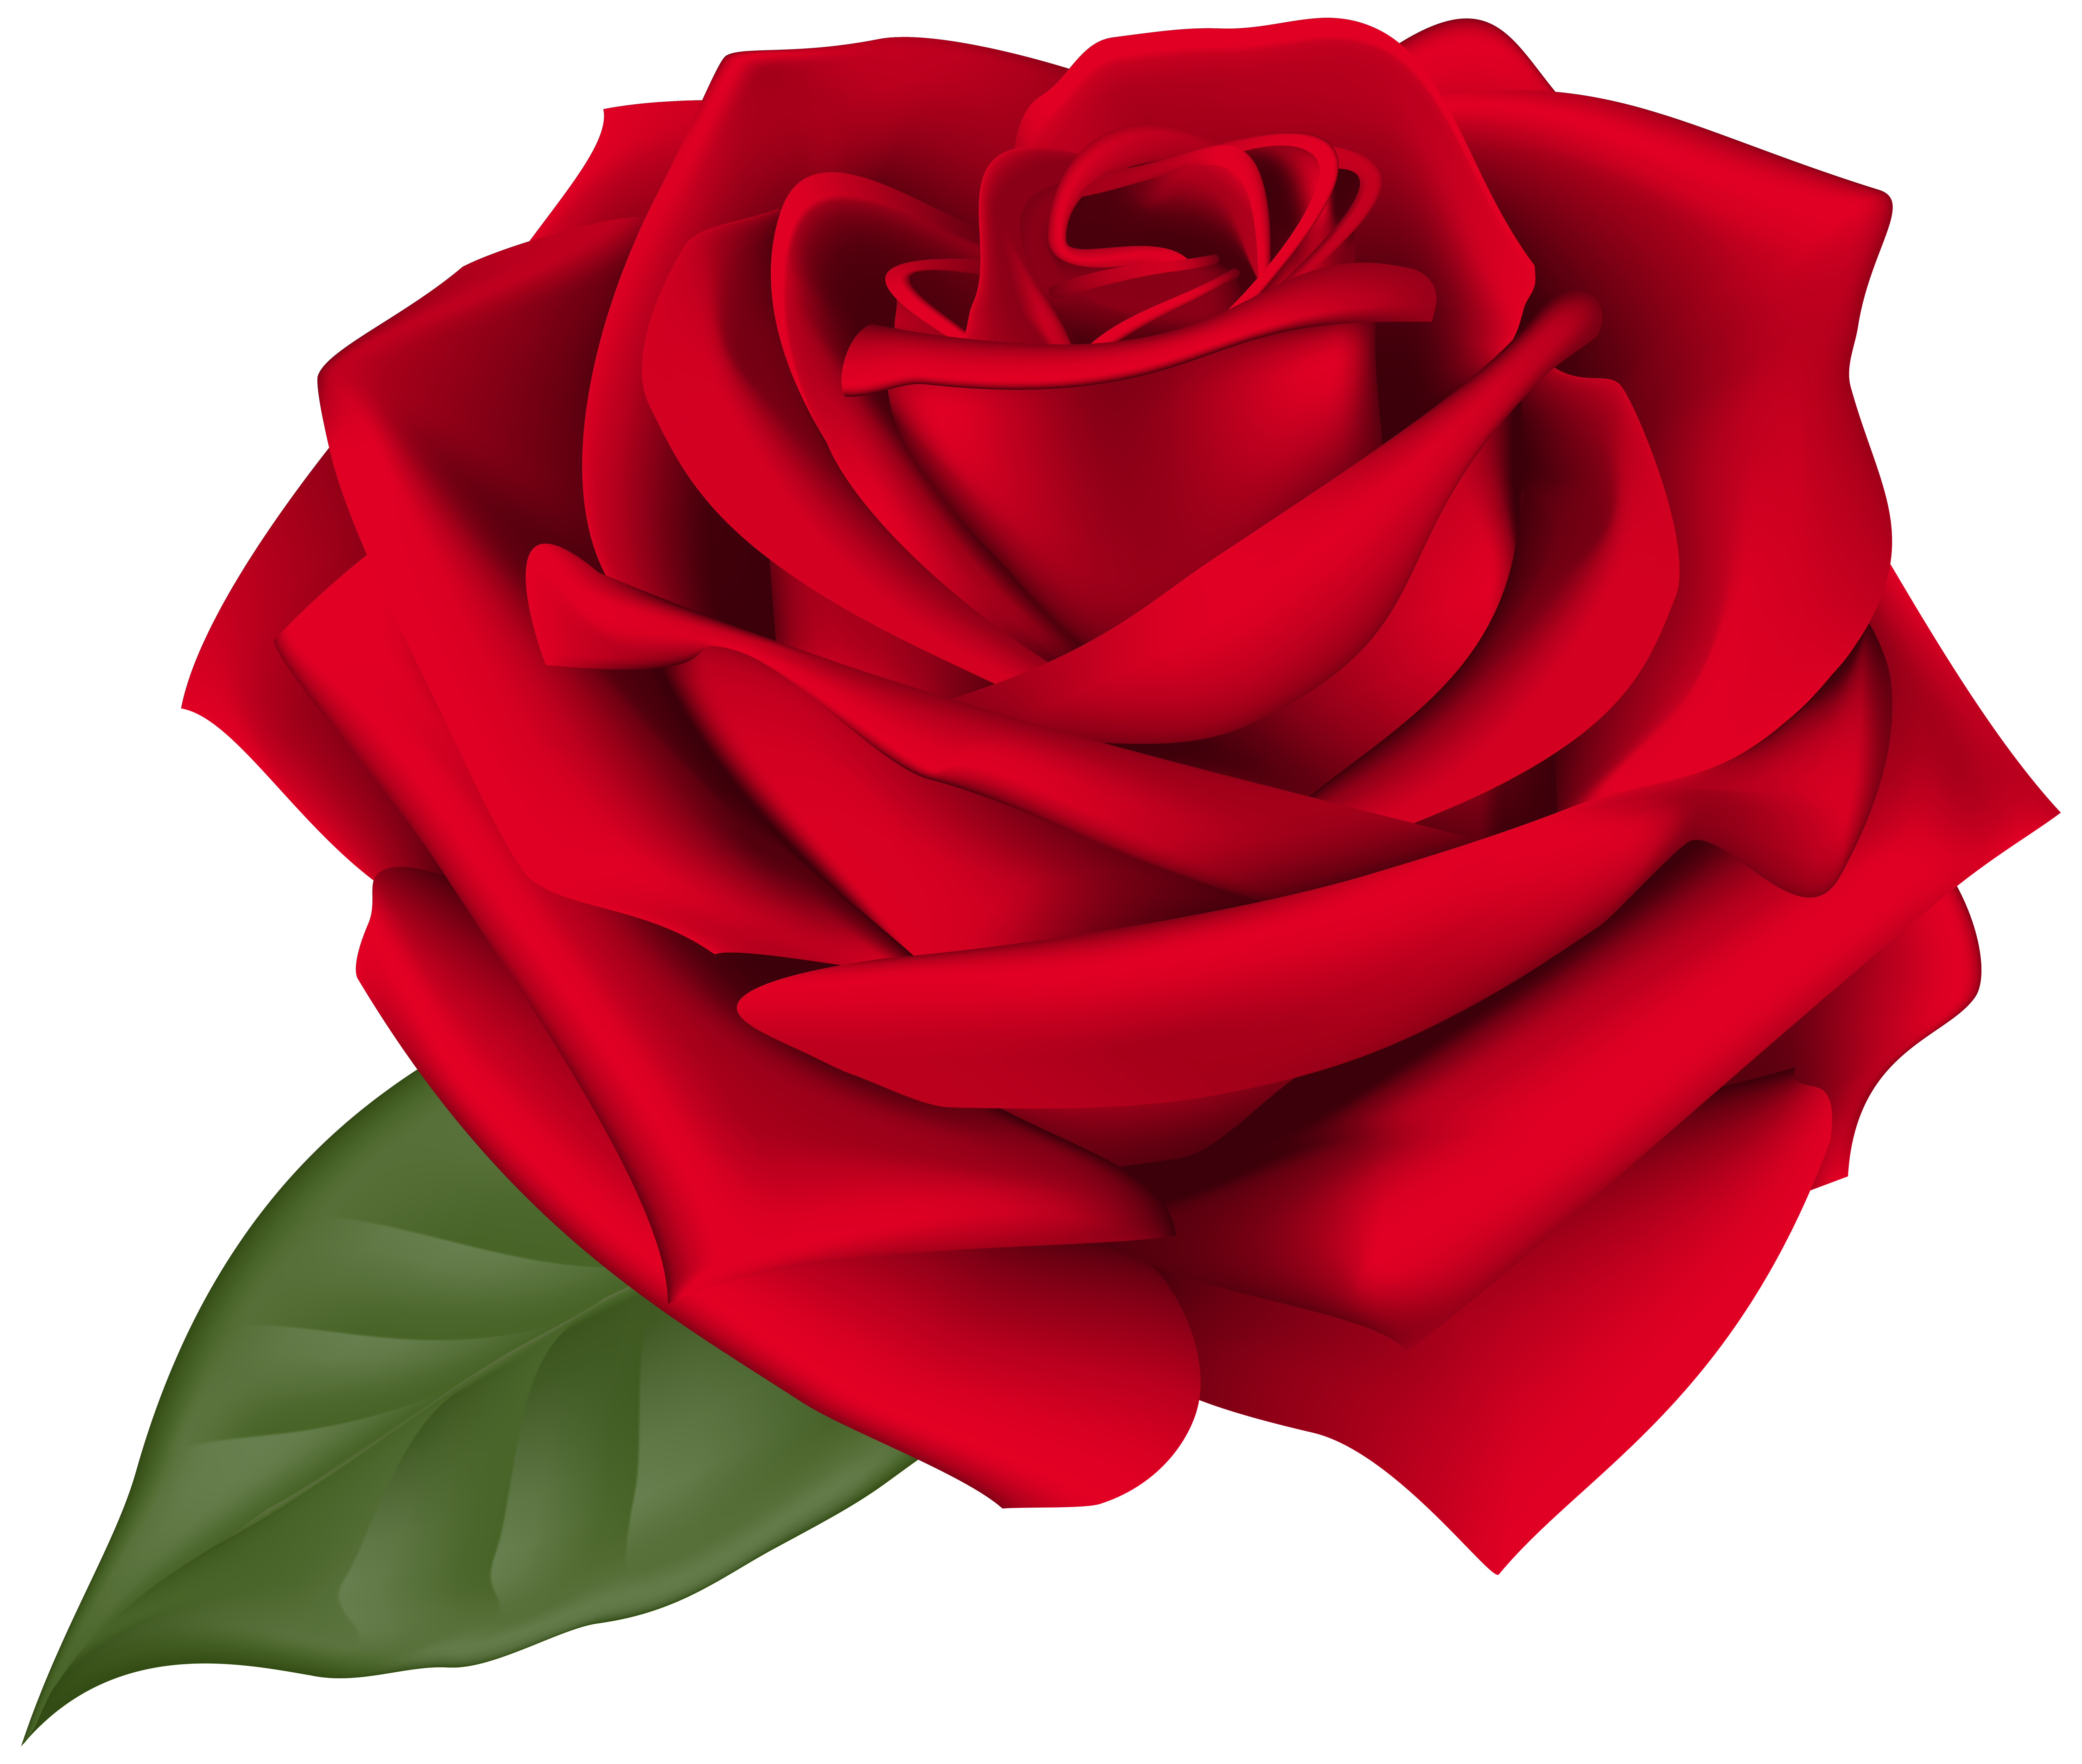 Clipart rose transparent background. Red png clip art